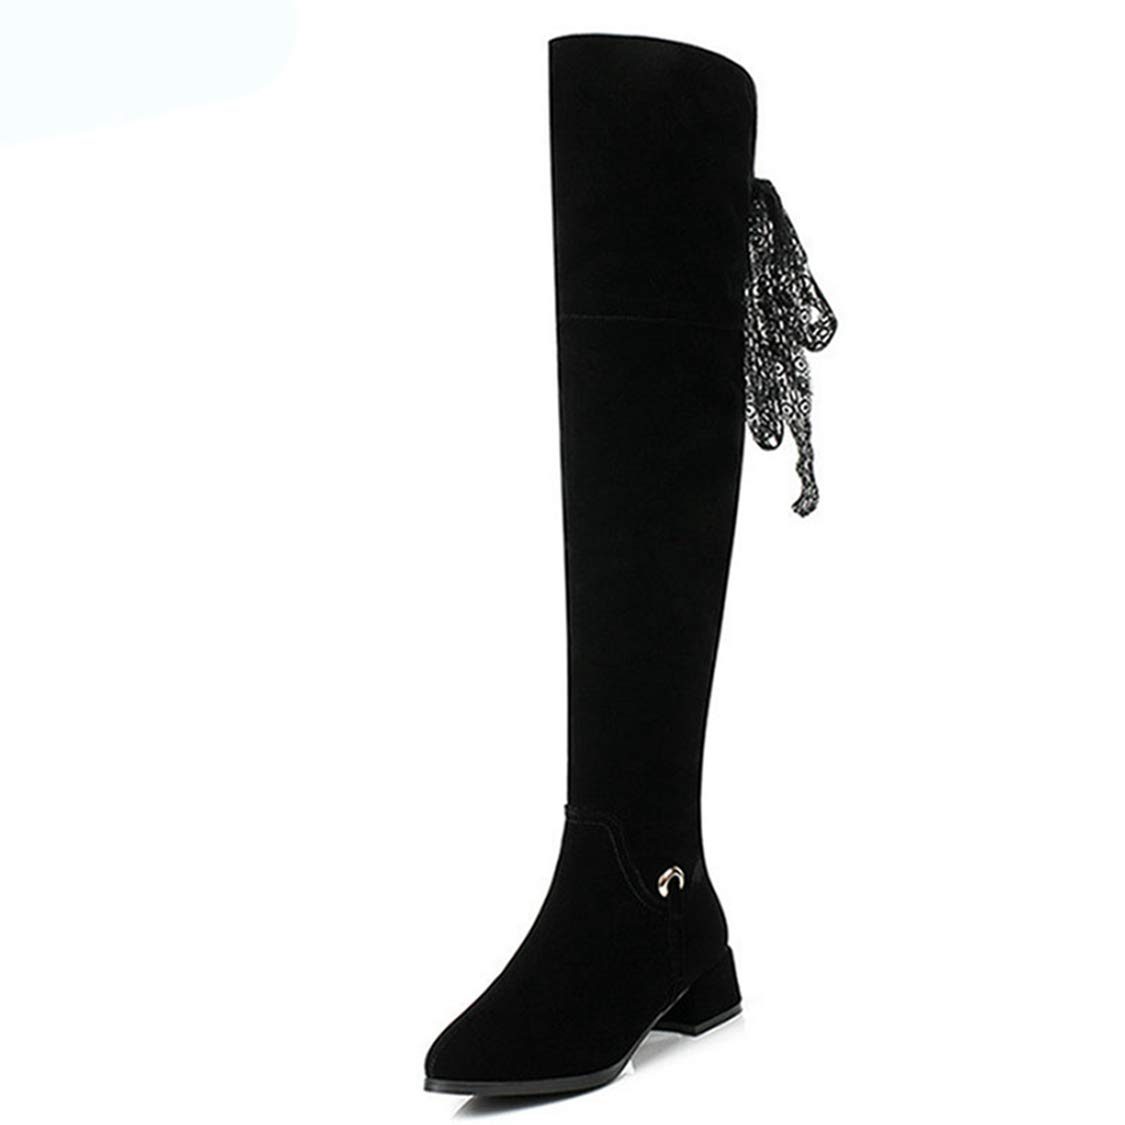 - DOSOMI Women's Flock Scrub Sexy Zipper Over The Knee Pullon Boot - Trendy High Square Heel shoes